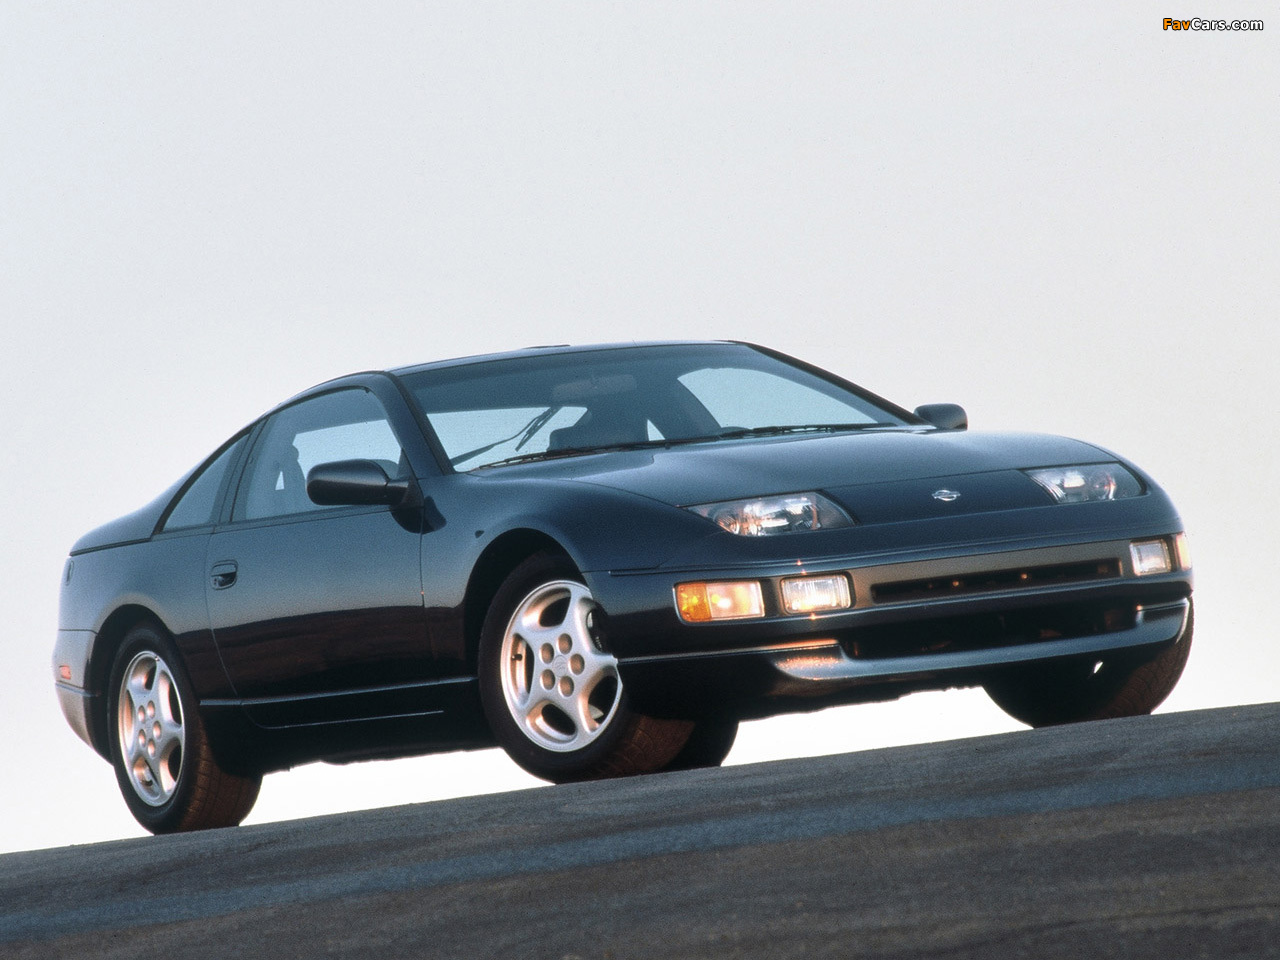 wallpapers_nissan_300zx_1990_1